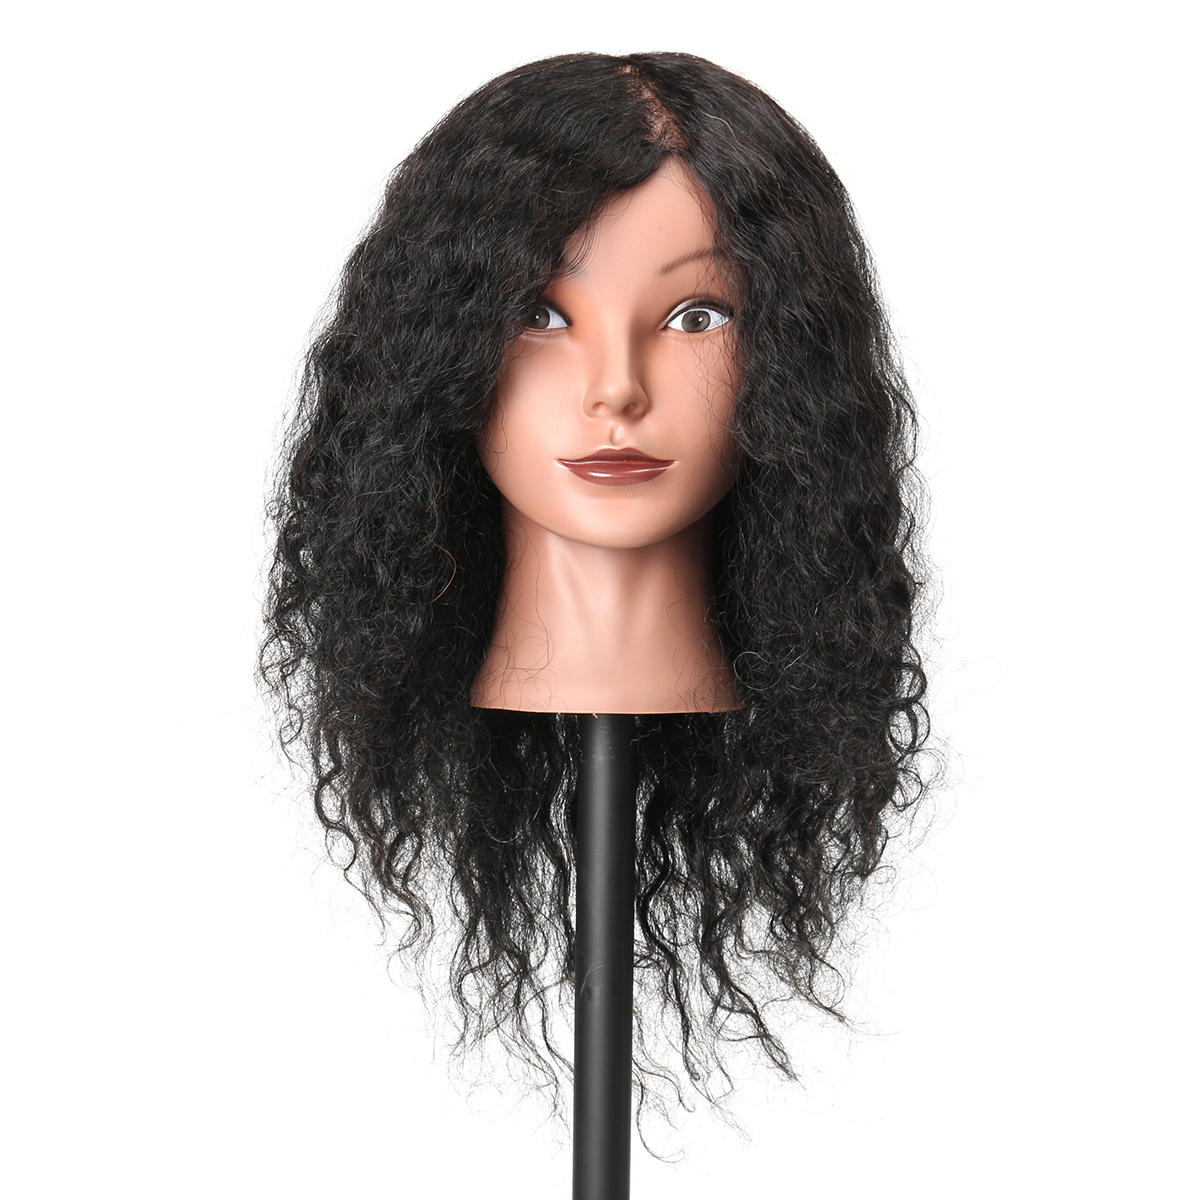 Female Plastic Mannequin Head Wig Hair Display Model Stand 3 Colors - 2